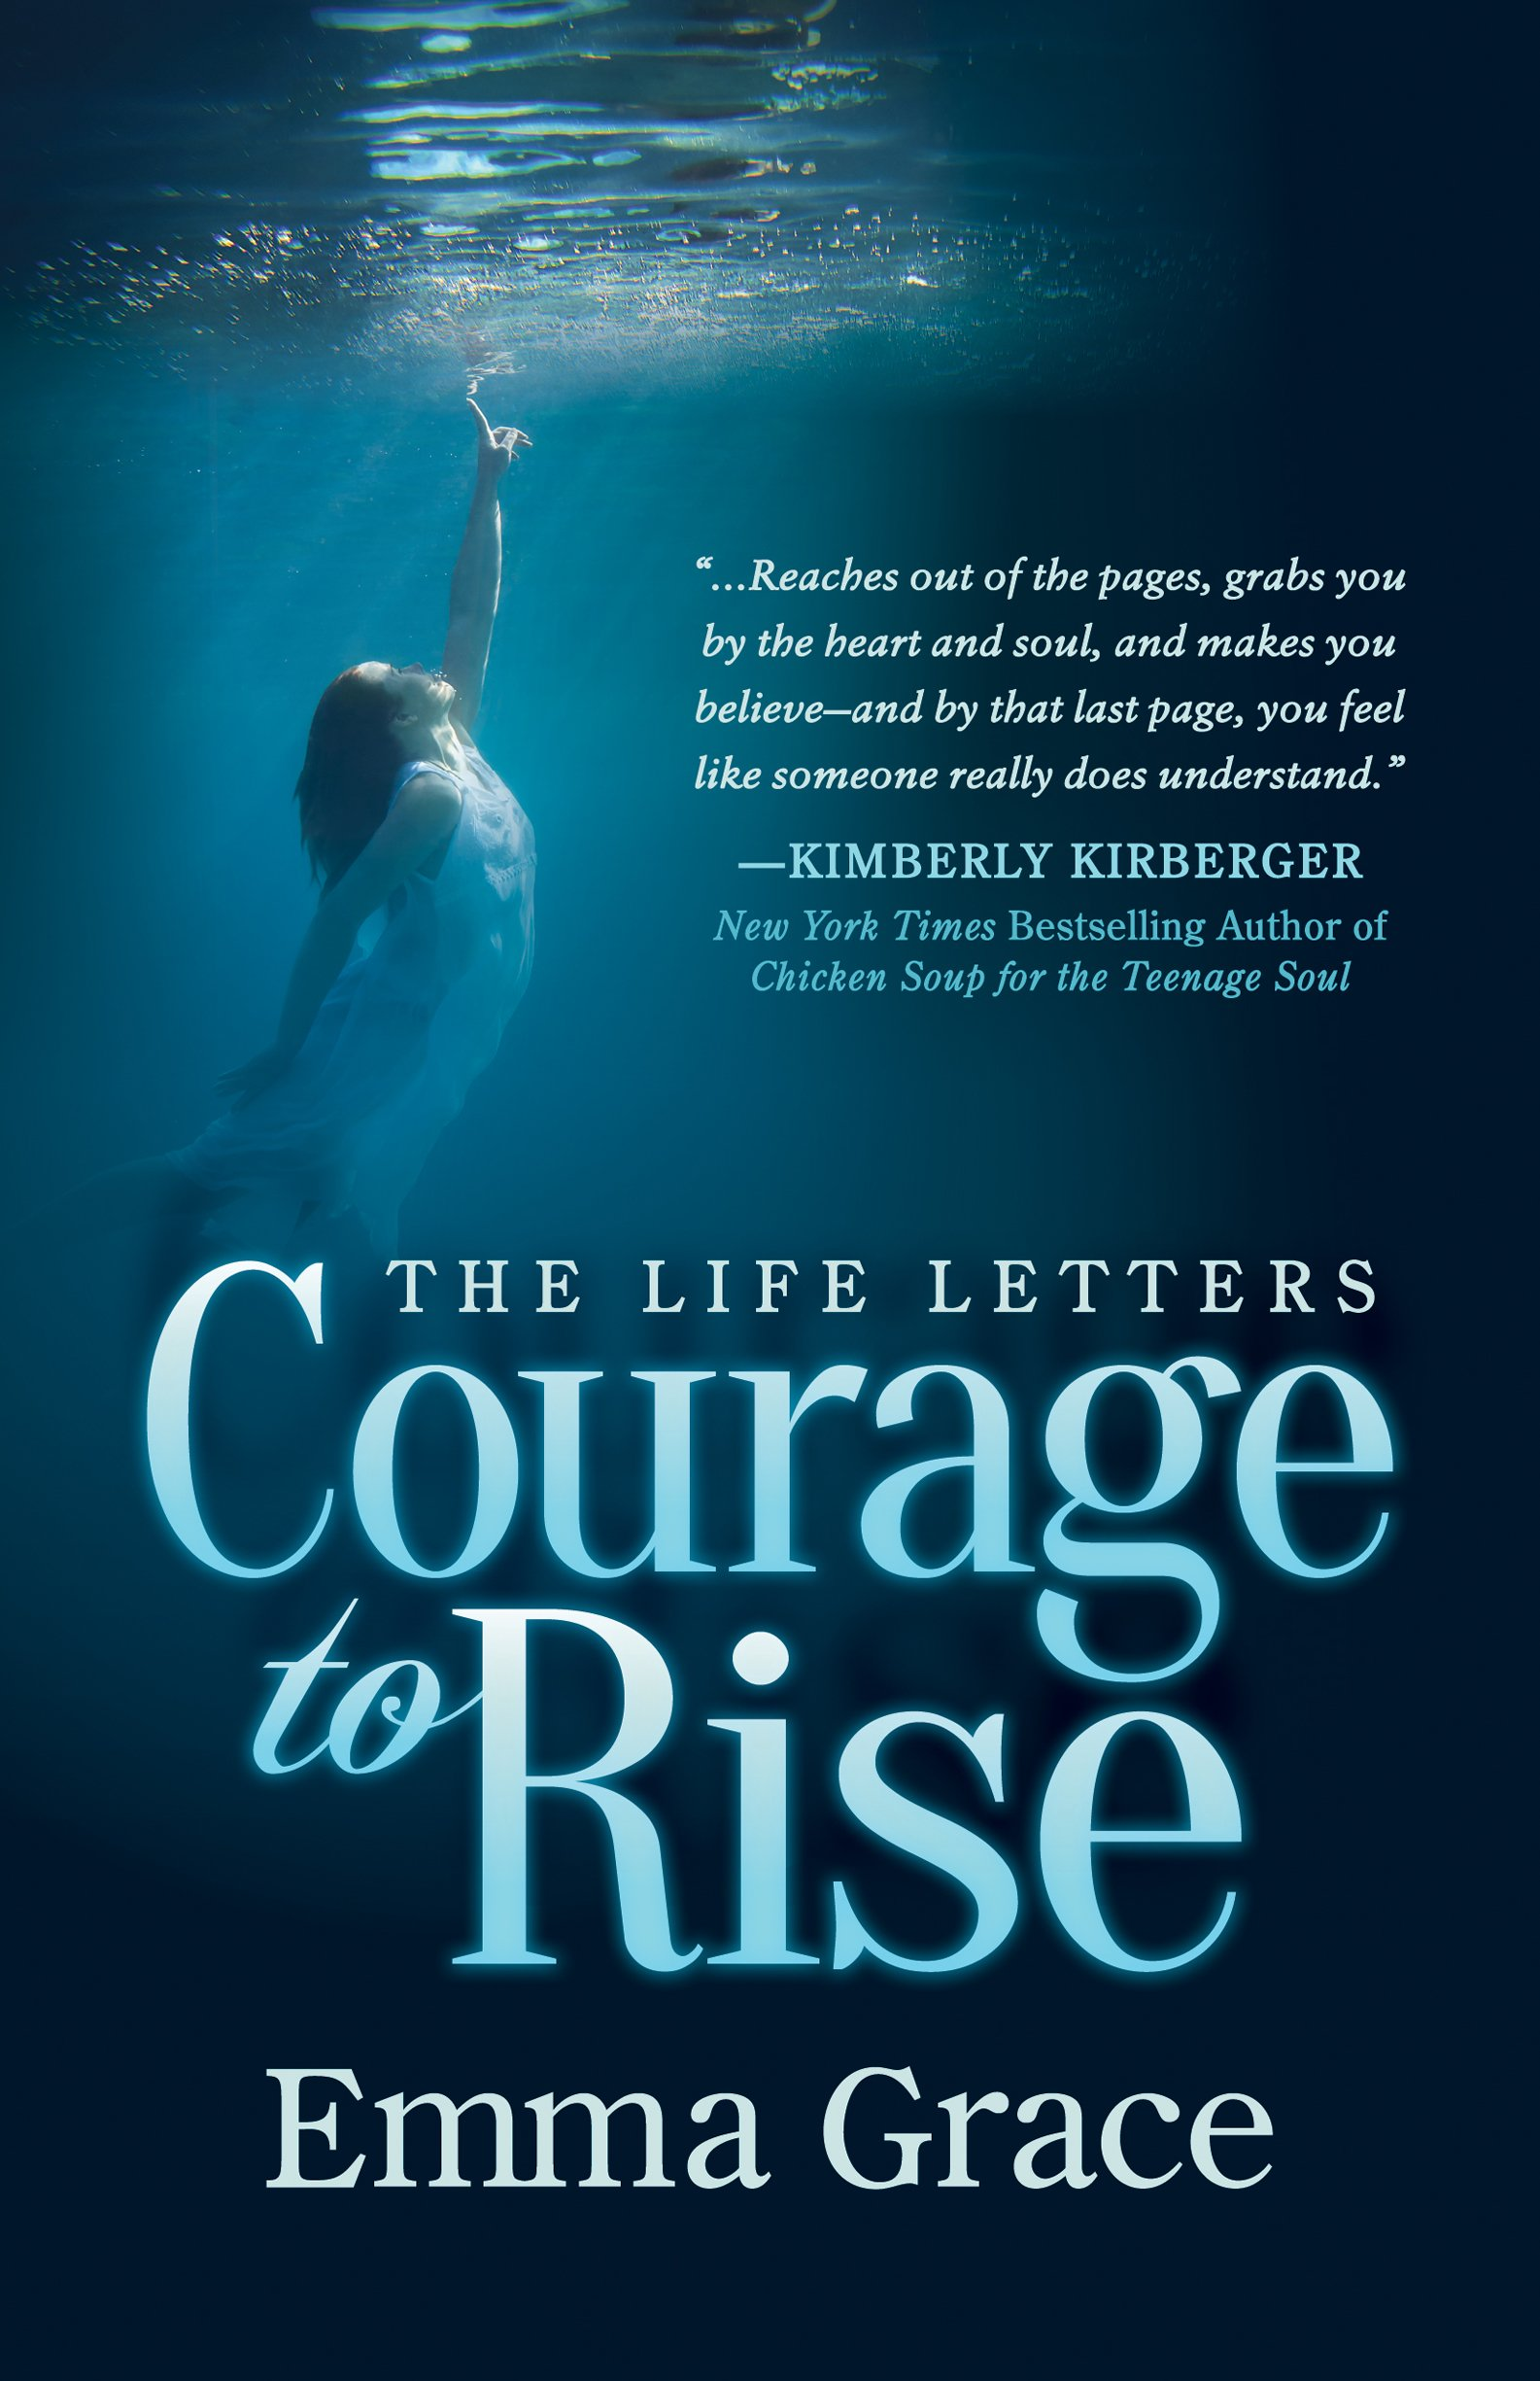 the life letters courage to rise emma grace kimberly kirberger